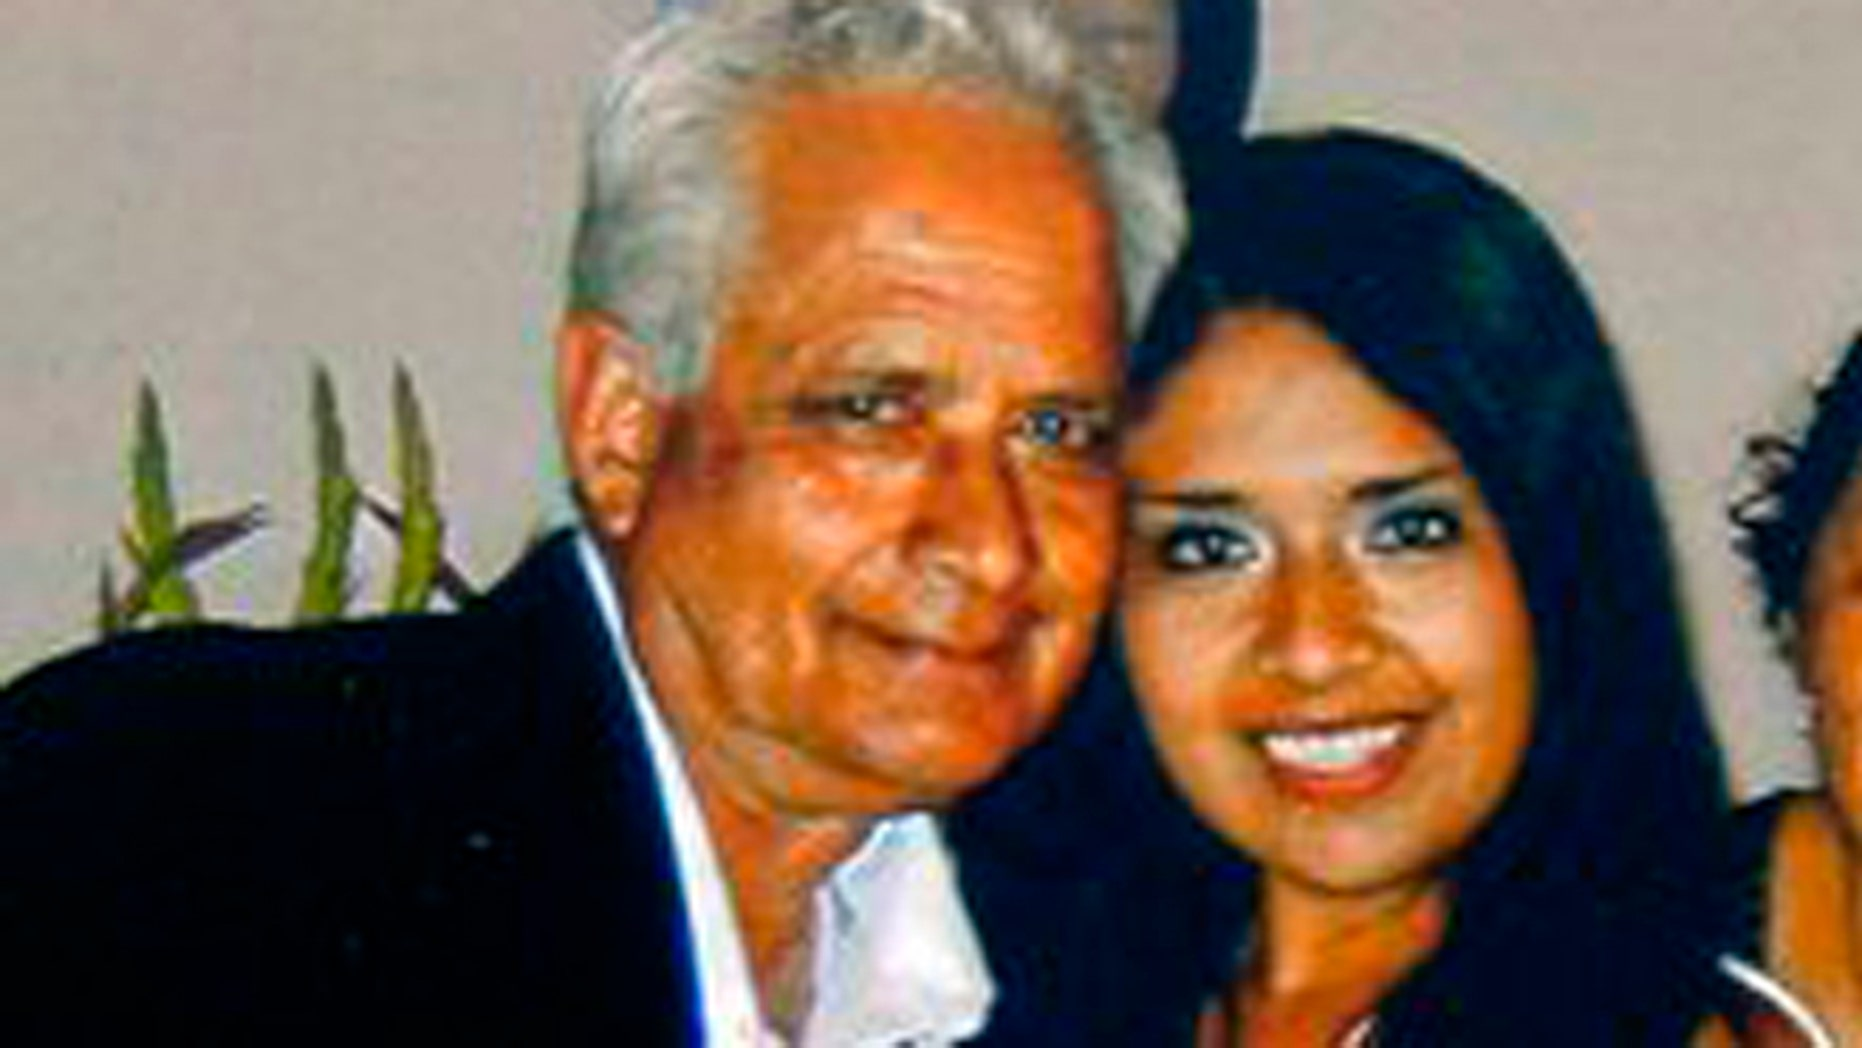 This undated photo provided by the family shows Carlos Navarro Franco and Marcela Franco. Marcela Franco died Sunday, June 9, 2013, after Friday's deadly rampage in Santa Monica, Calif. (AP Photo/Family Photo)